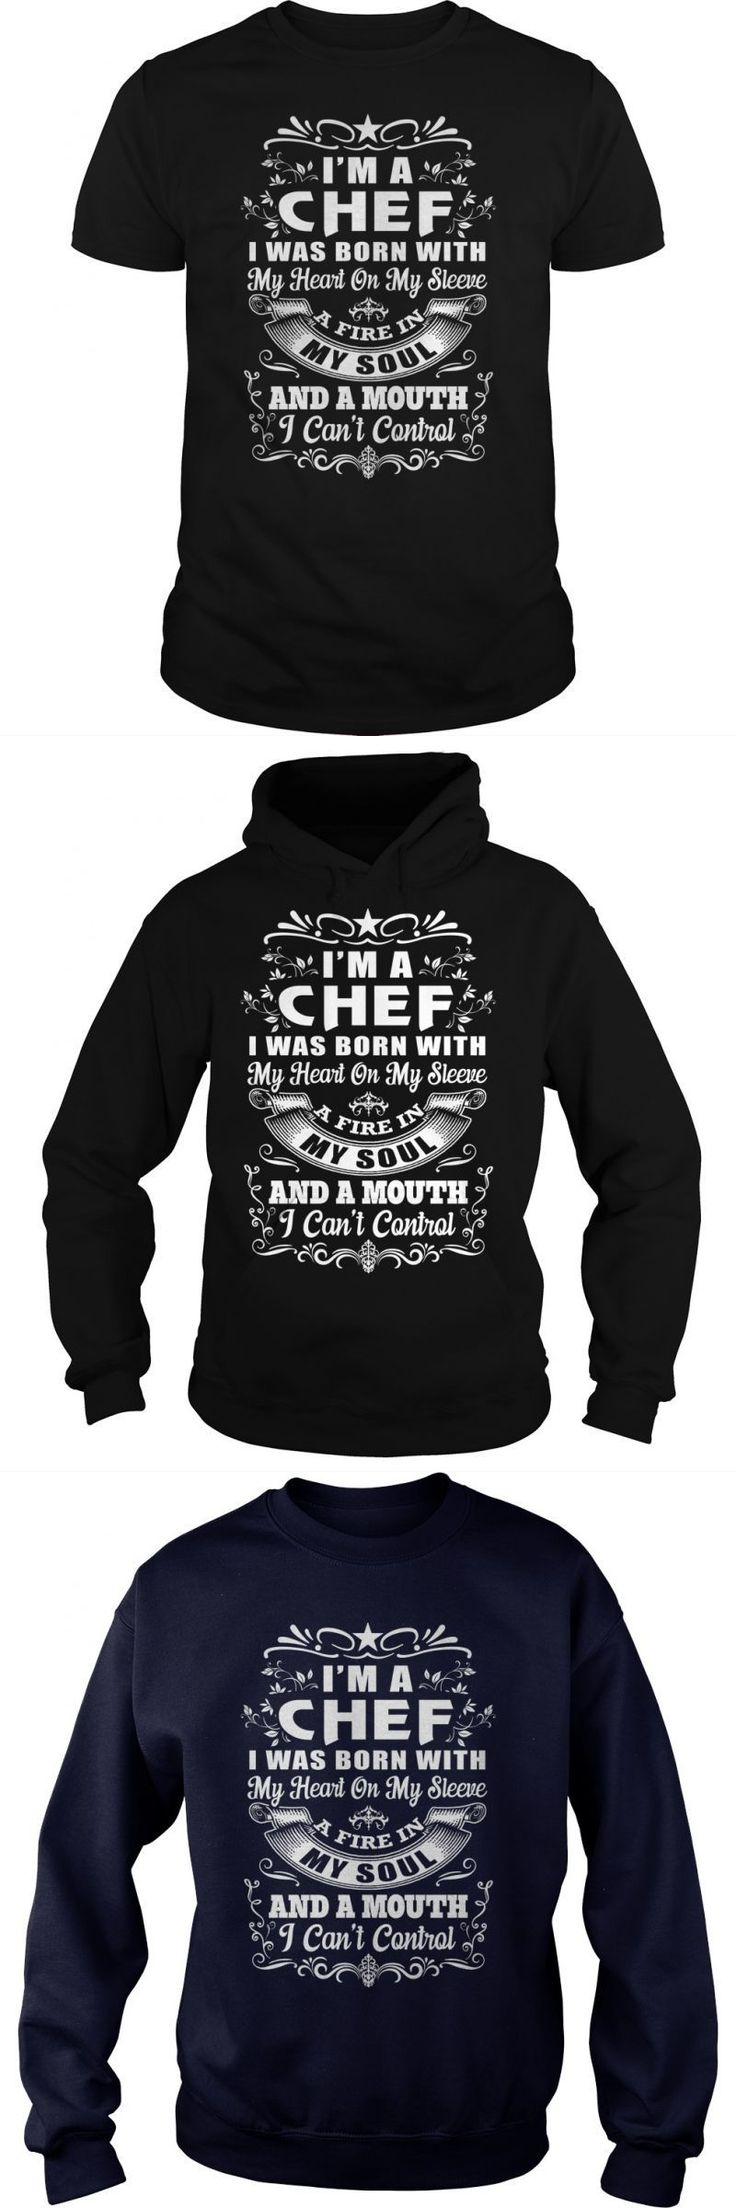 Just For Who Loves Chef     Guys Tee Hoodie Sweat Shirt Ladies Tee Youth Tee Guys V-Neck Ladies V-Neck Unisex Tank Top Unisex Longsleeve Tee Little Chef Charlie T-shirt Chef T Shirt Rock Chef T-shirt Sous Chef T Shirt